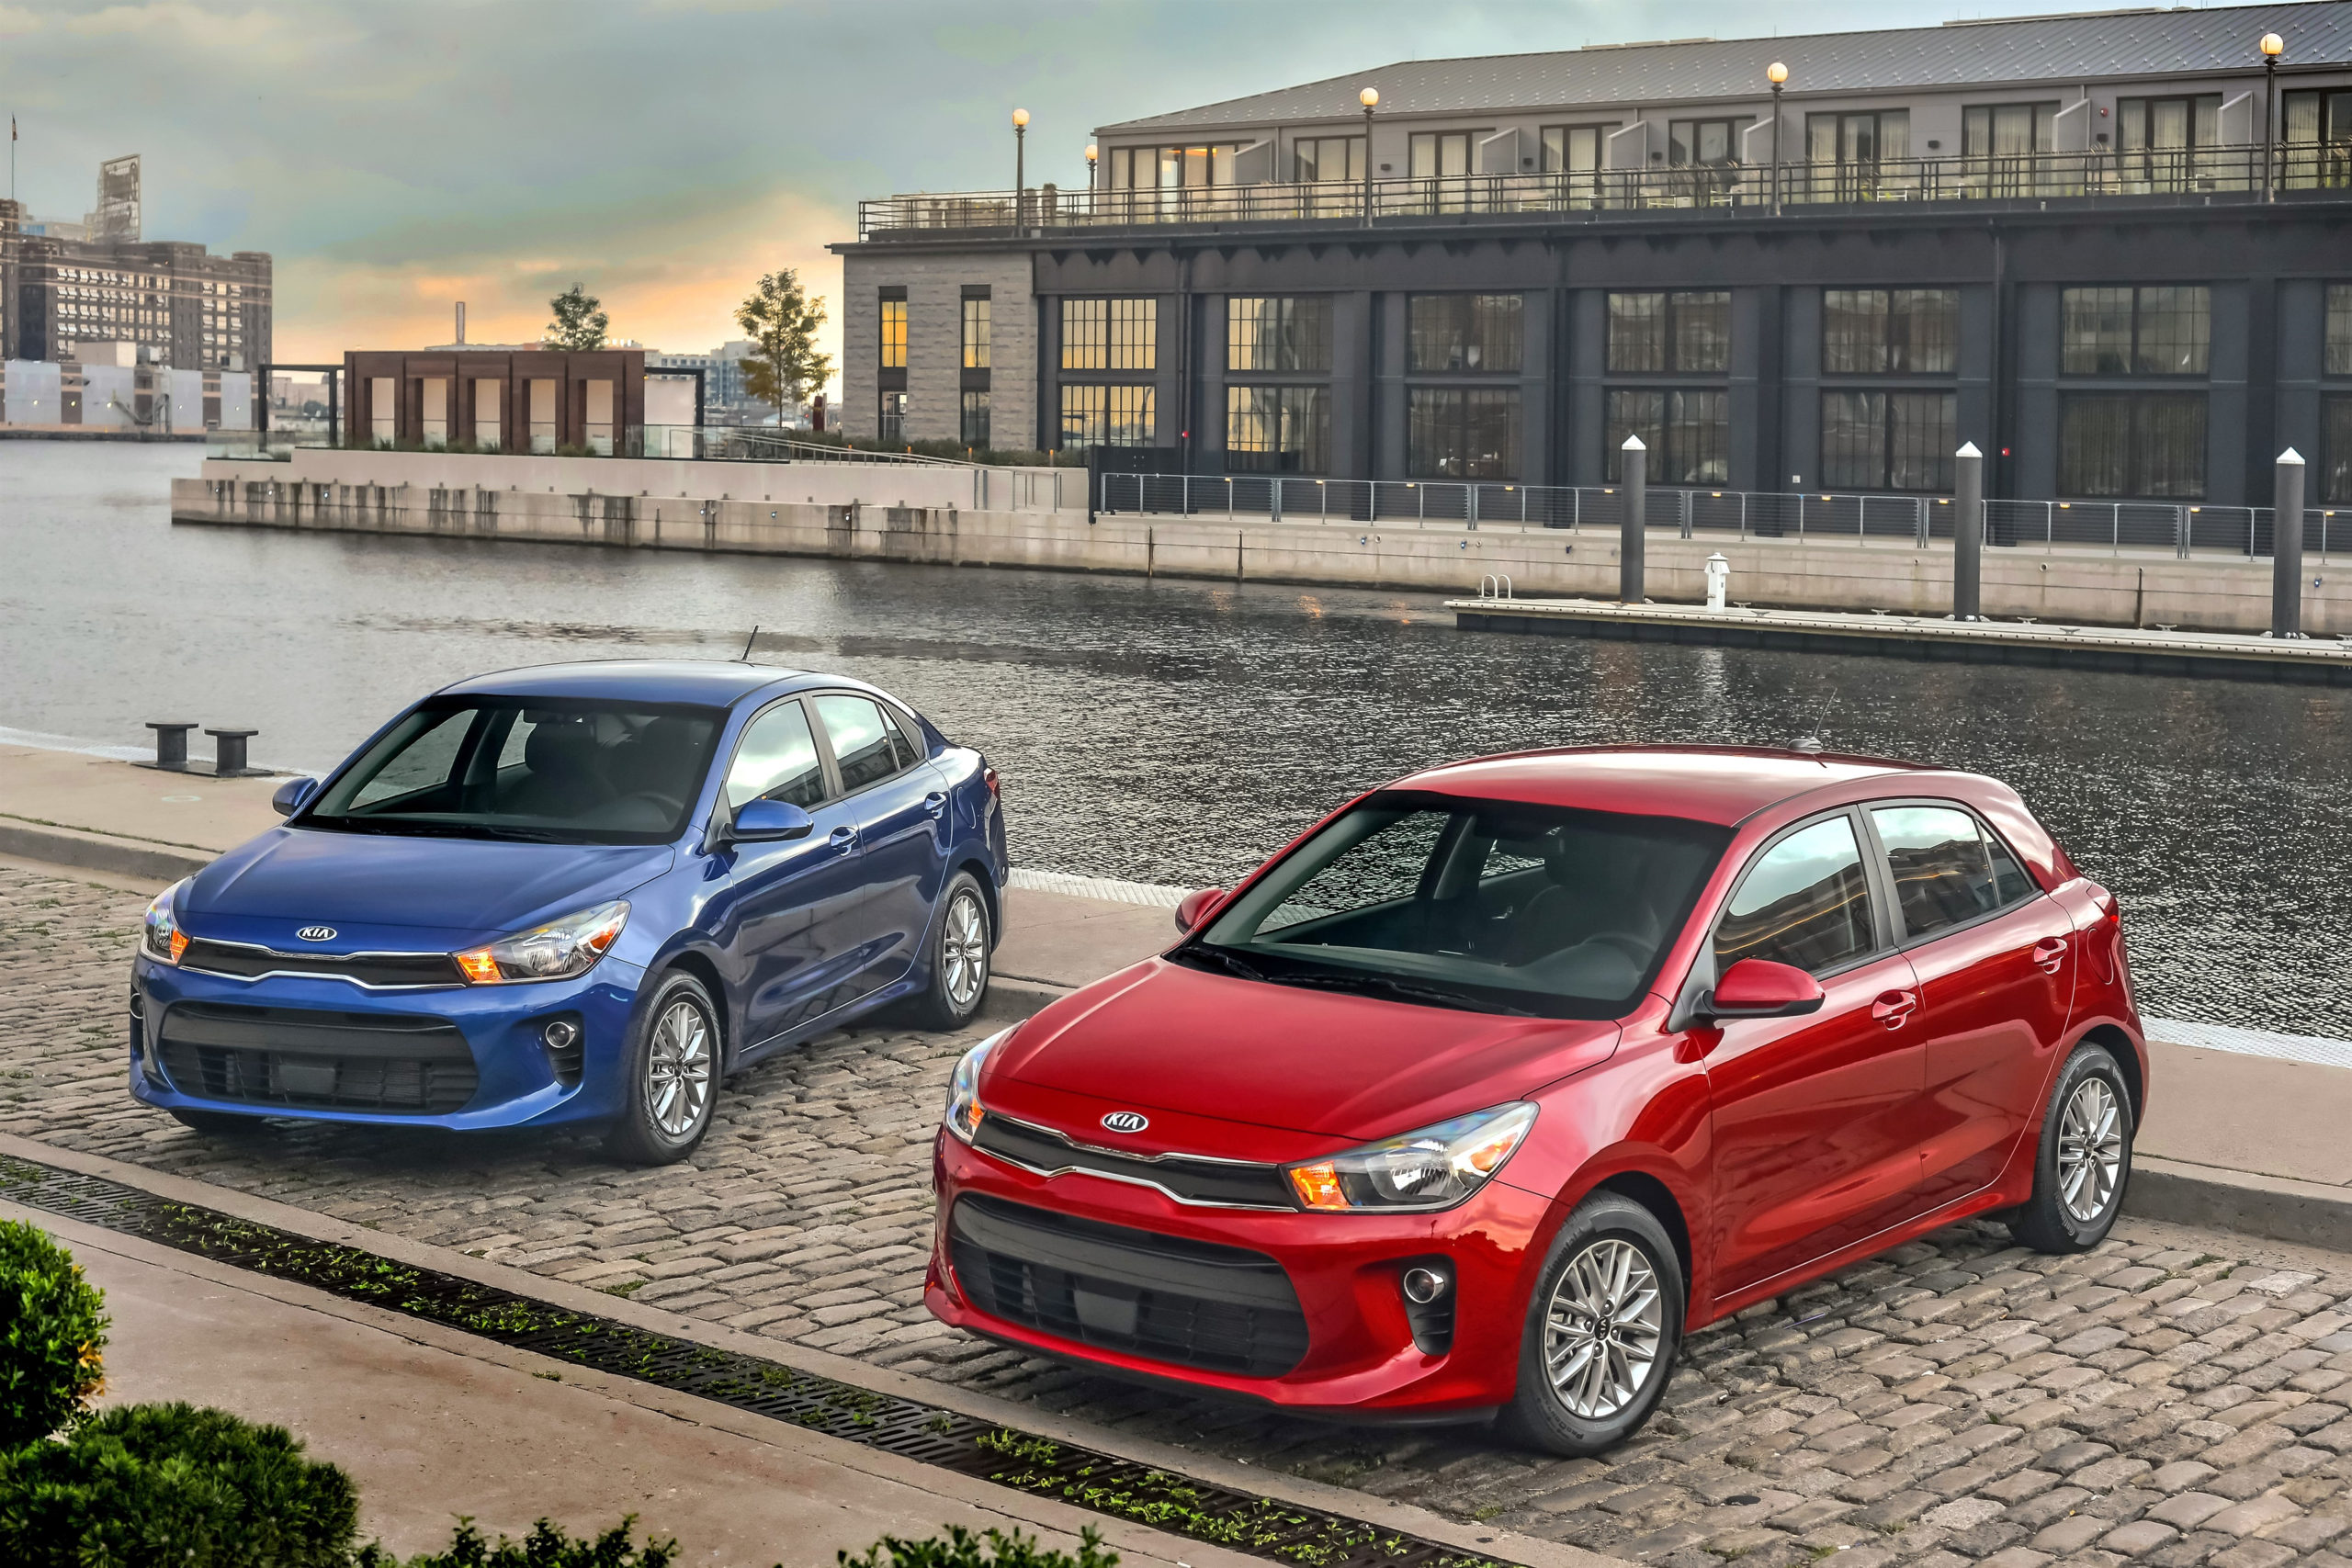 Kia's Product Line-Up Until 2022 - Korean Car Blog - 2022 Kia Rio Black Concept, Specifications, Release Date